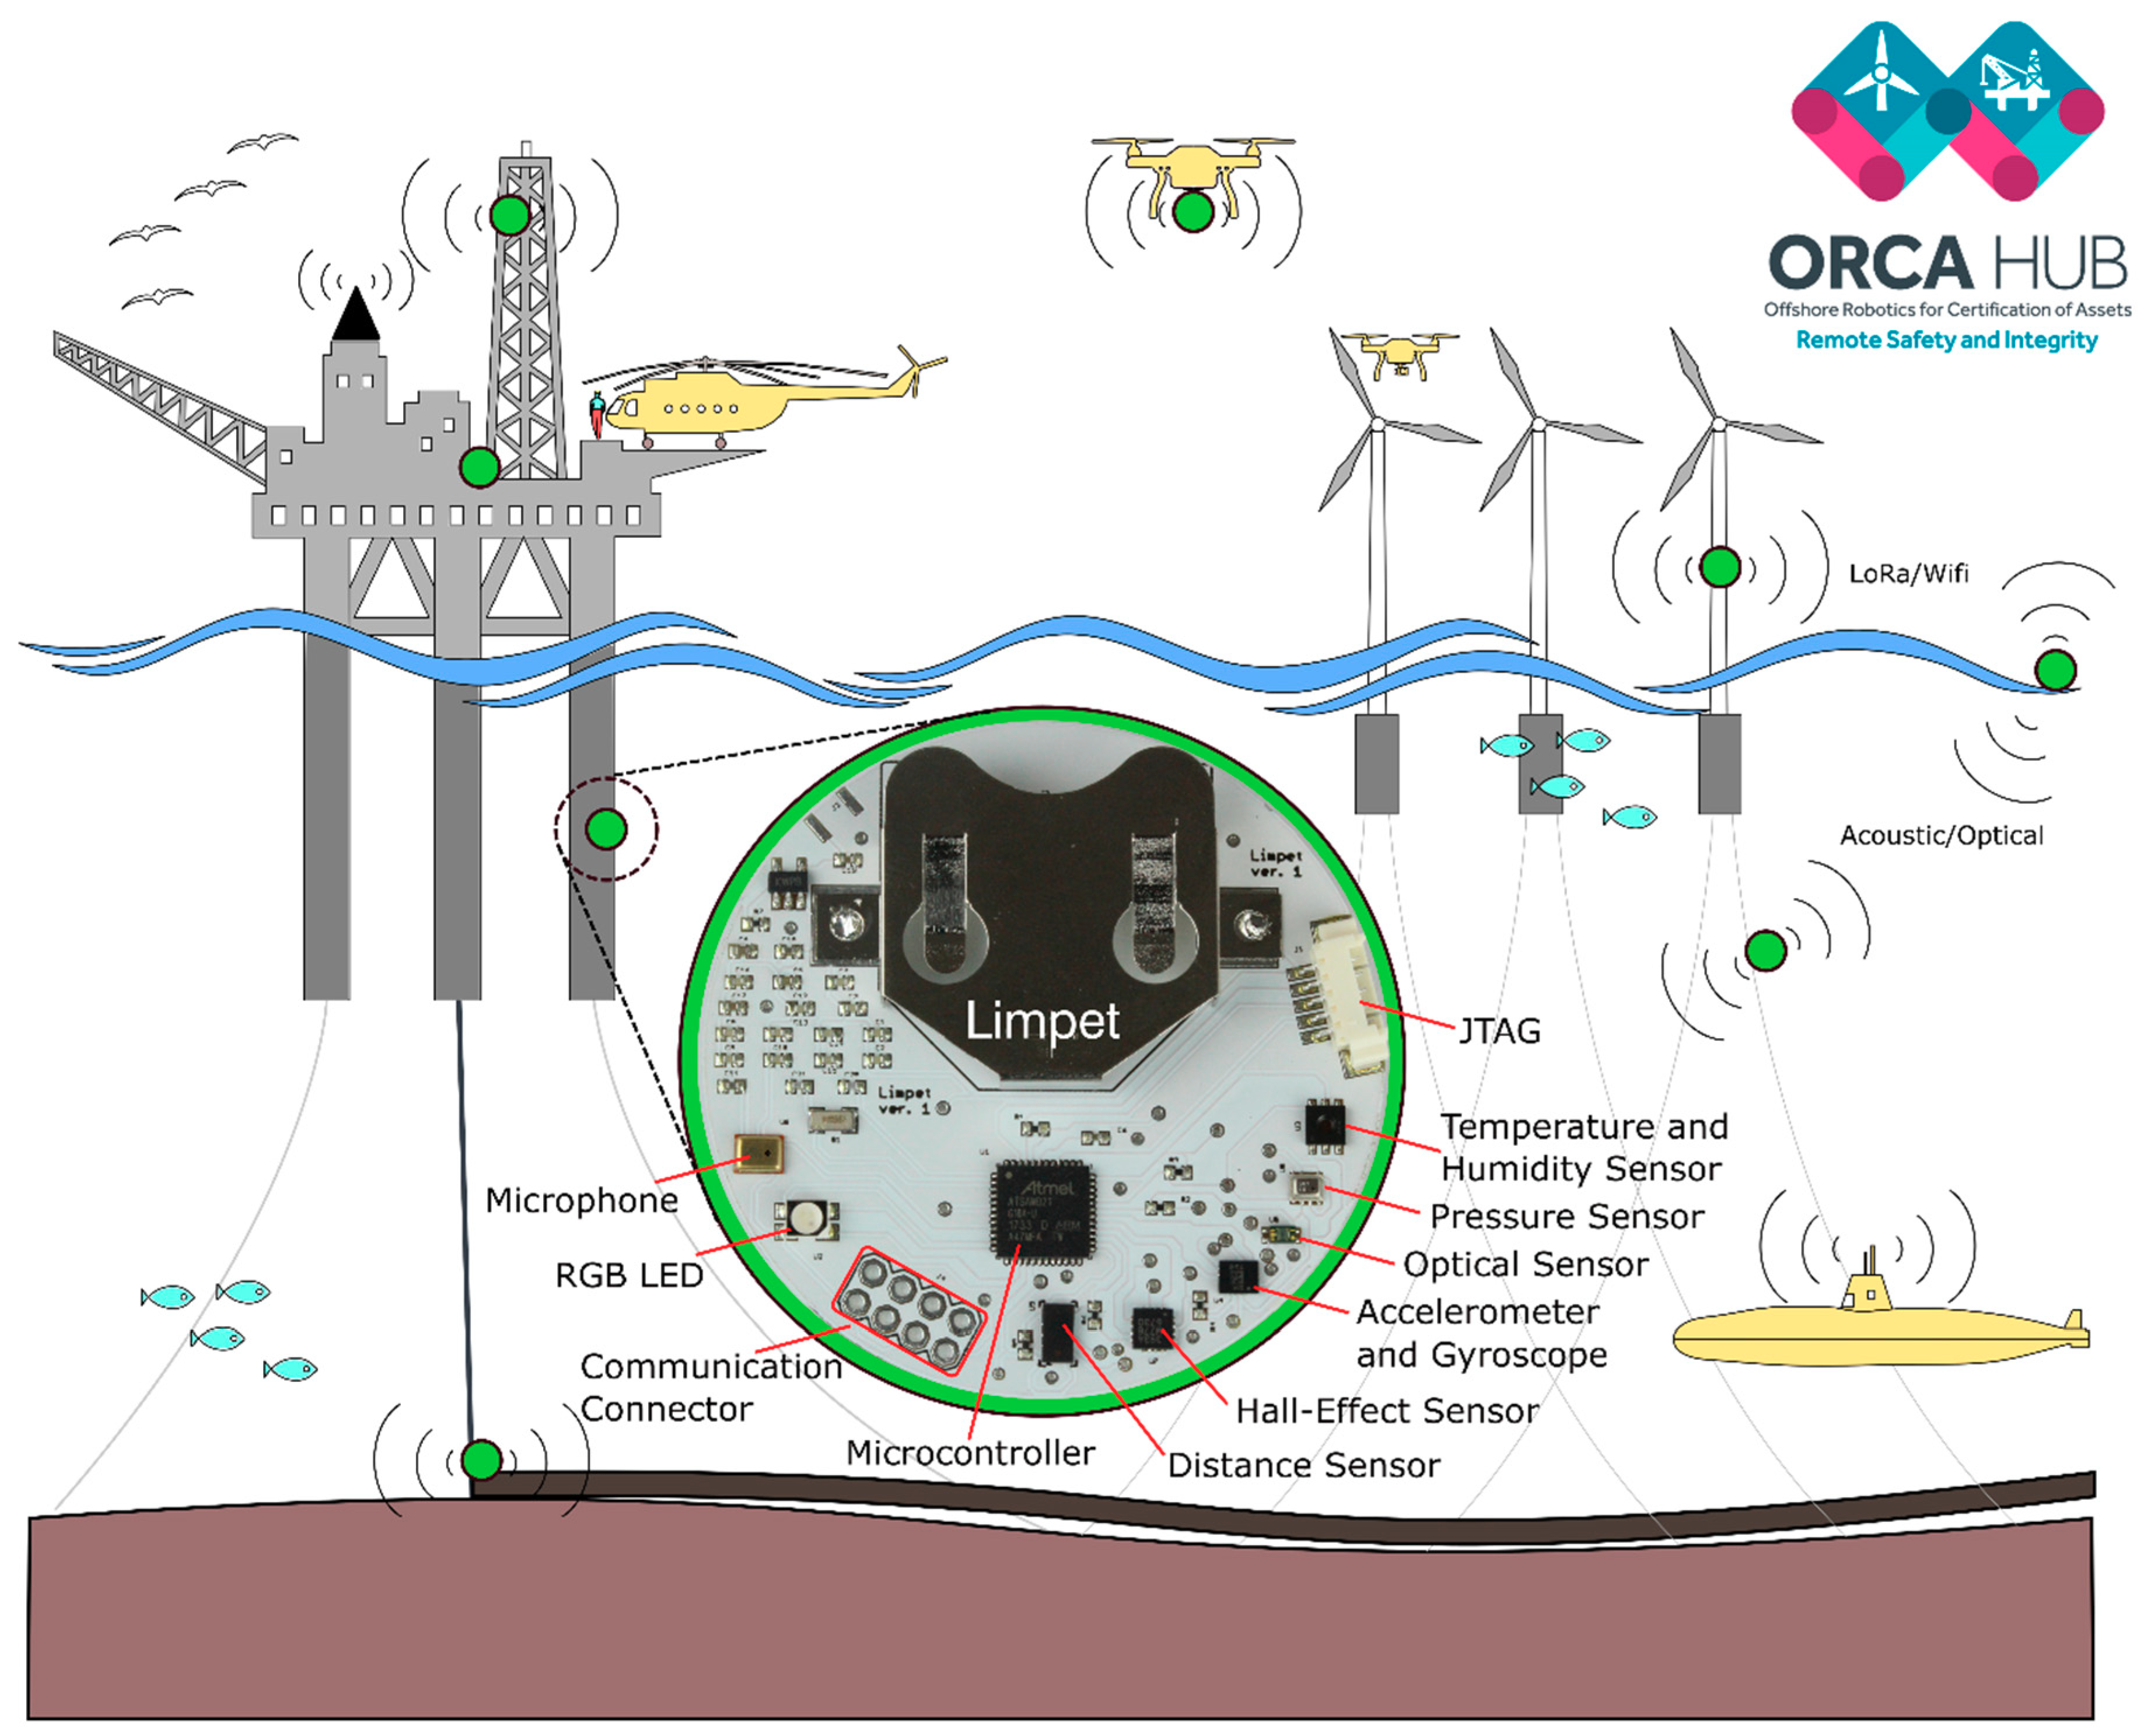 Sensors Free Full Text The Limpet A Ros Enabled Multi Sensing Shown Below Is Schematic For Pulse Width Monitor Offshore Robotics Current State Of Art And Challenges